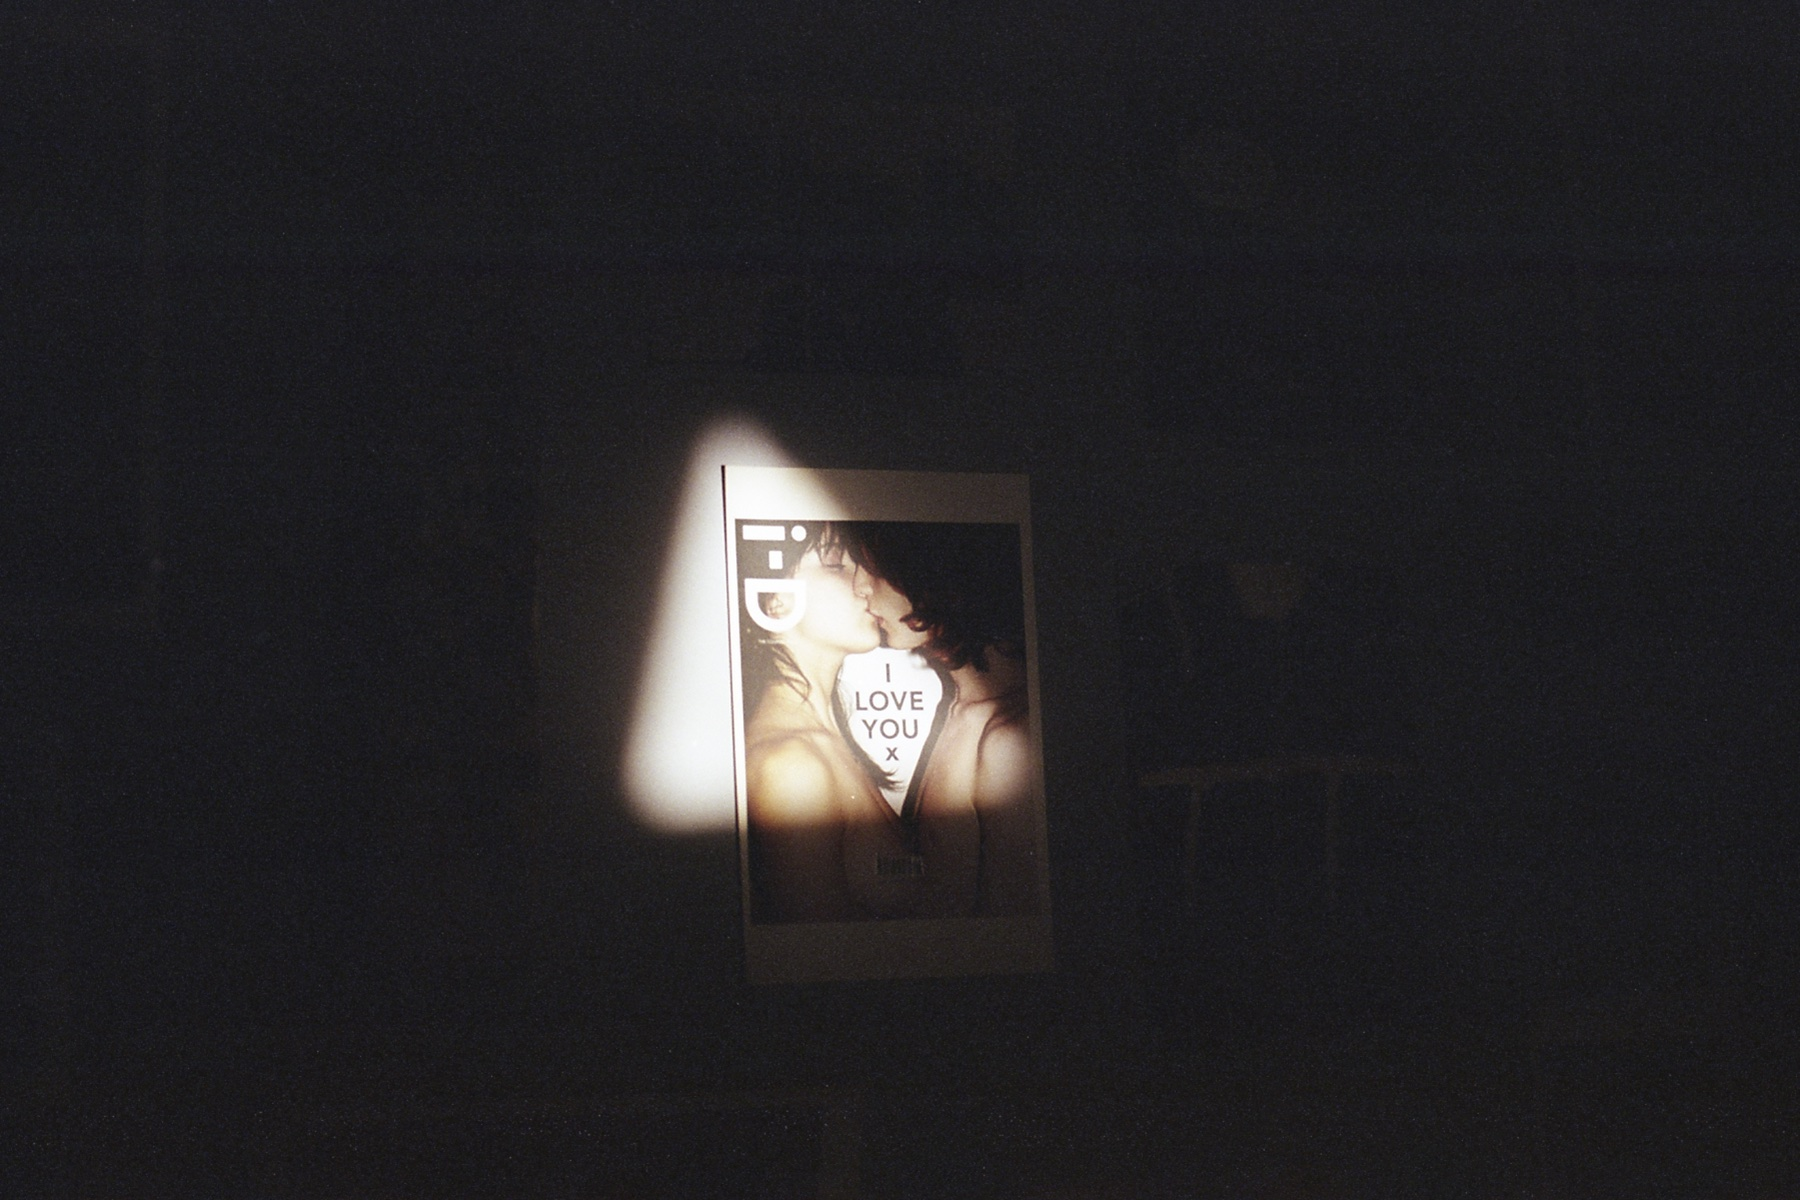 Poster of an i-D magazine cover against a blank wall and lit by a triangle of light.